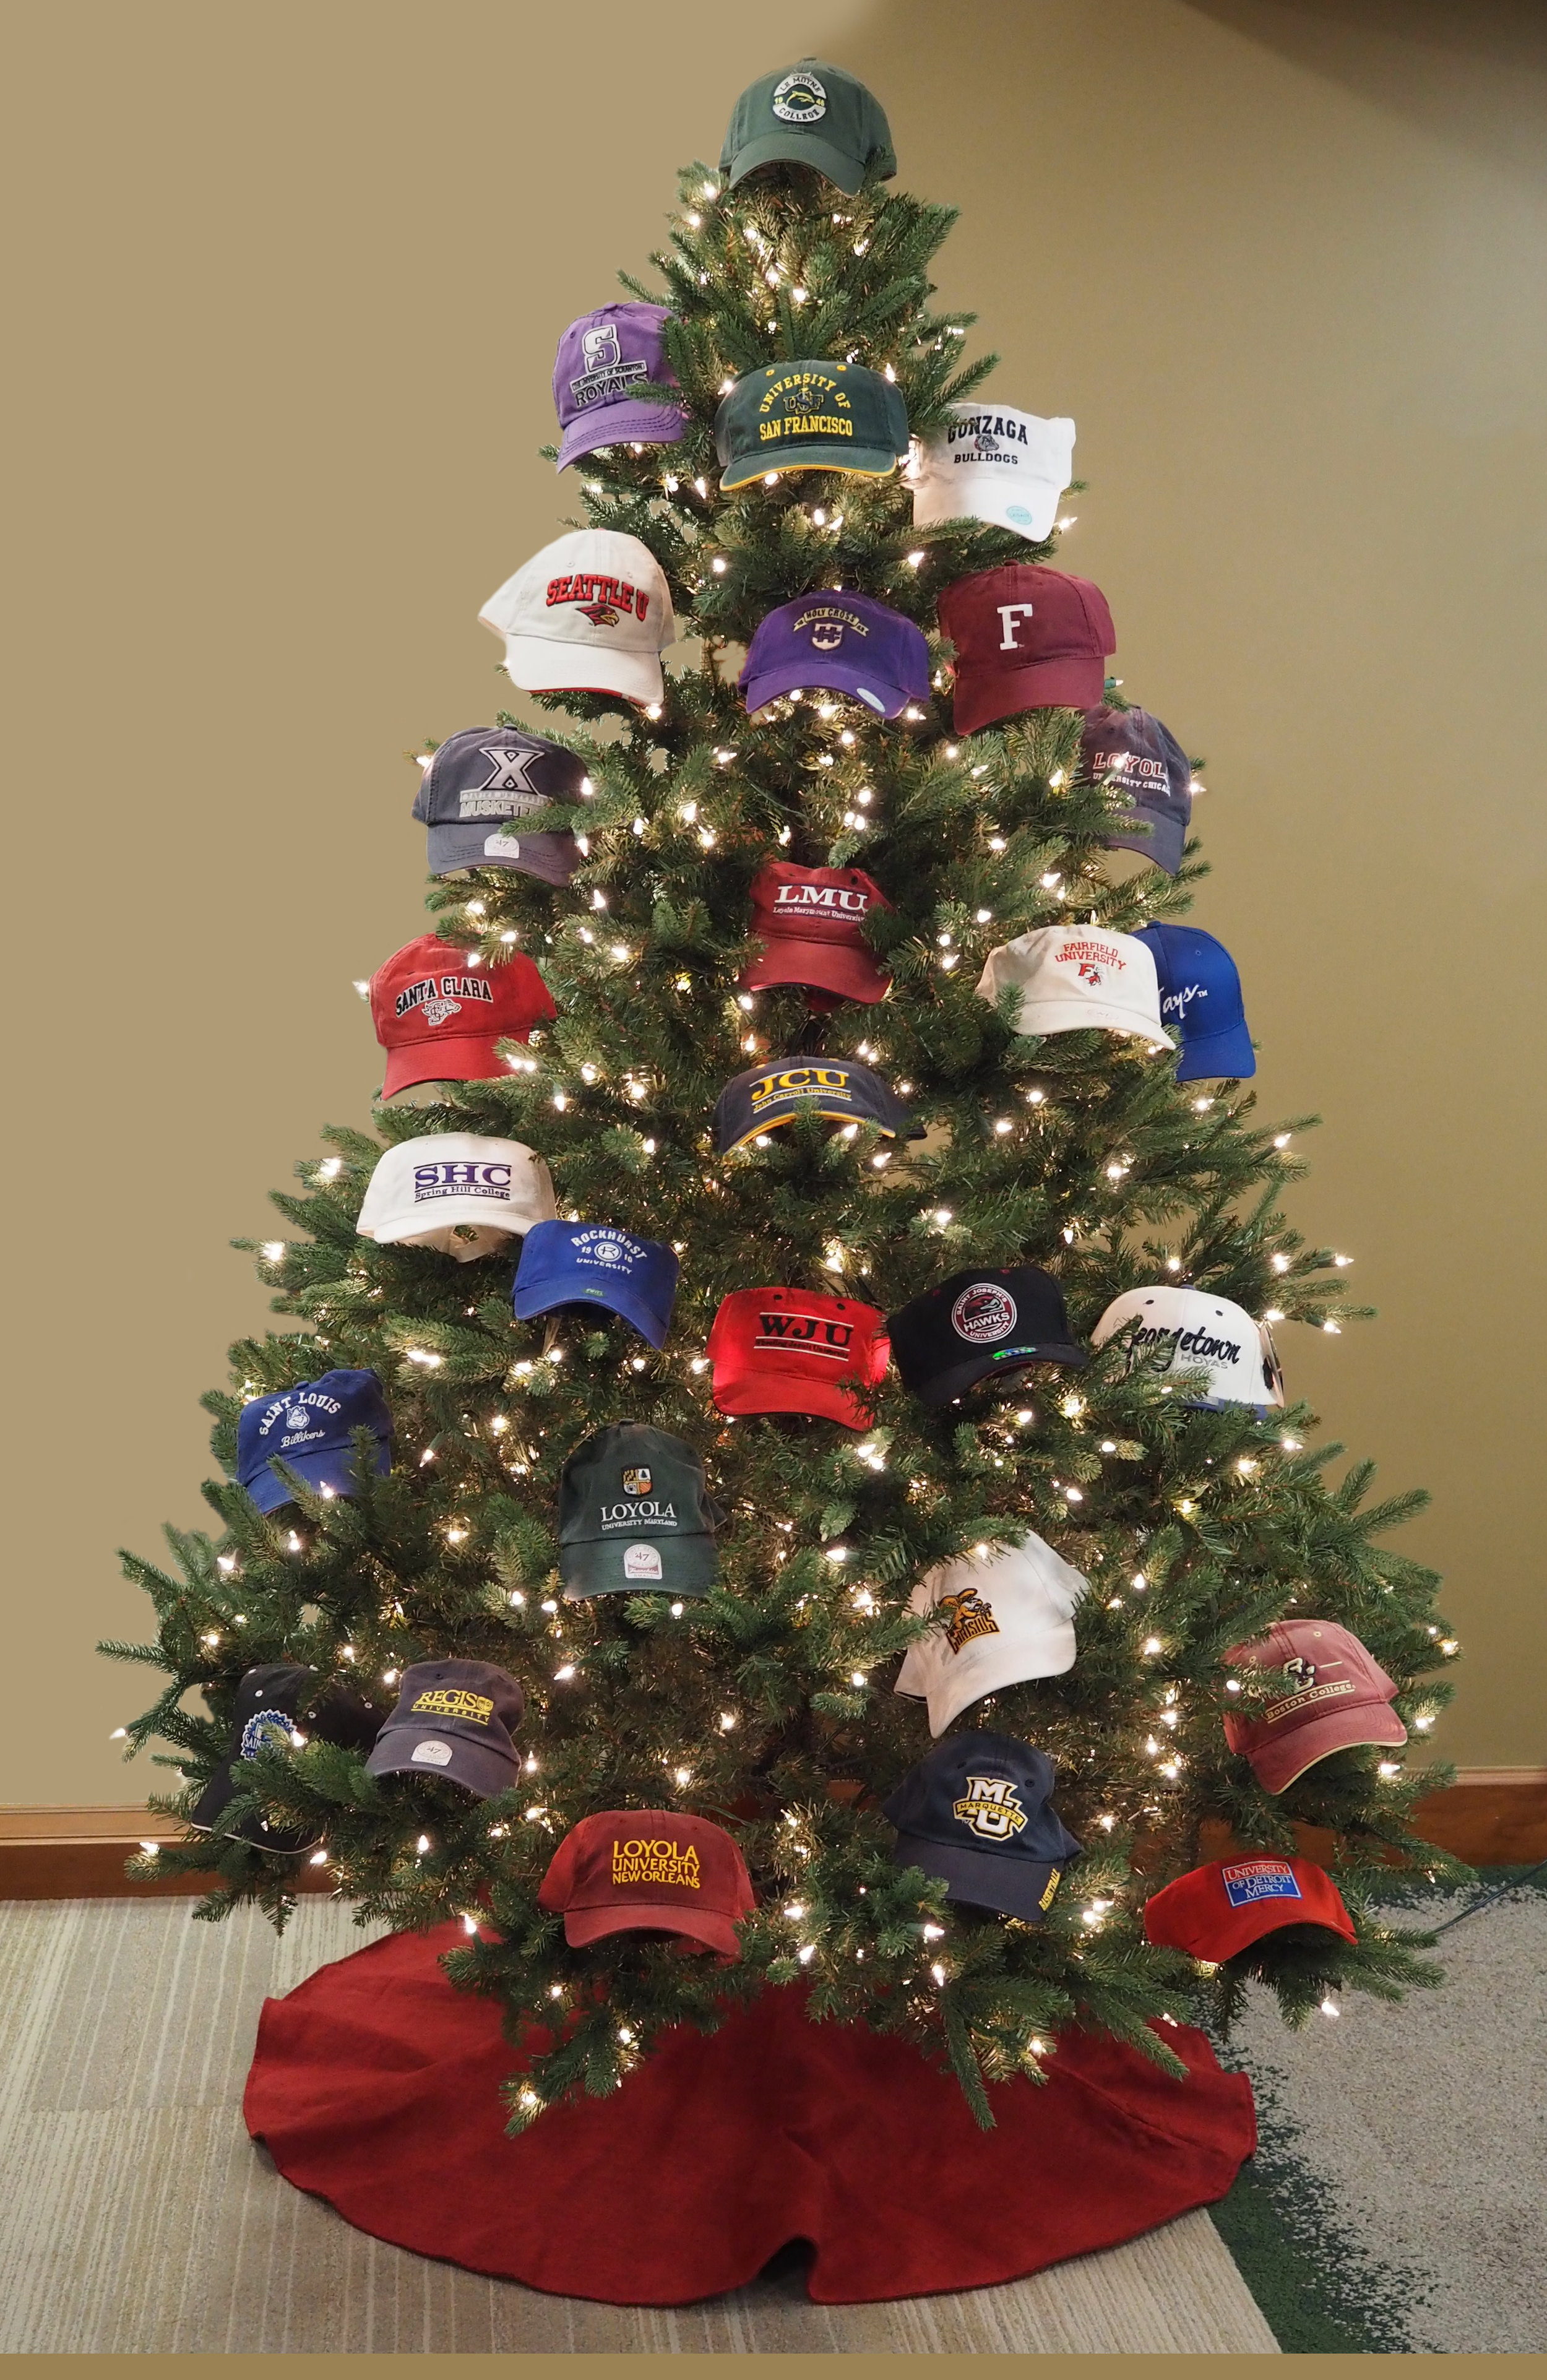 Le Moyne College's Christmas tree features hats from all 28 U.S. Jesuit colleges and universities (photo by Le Moyne College)